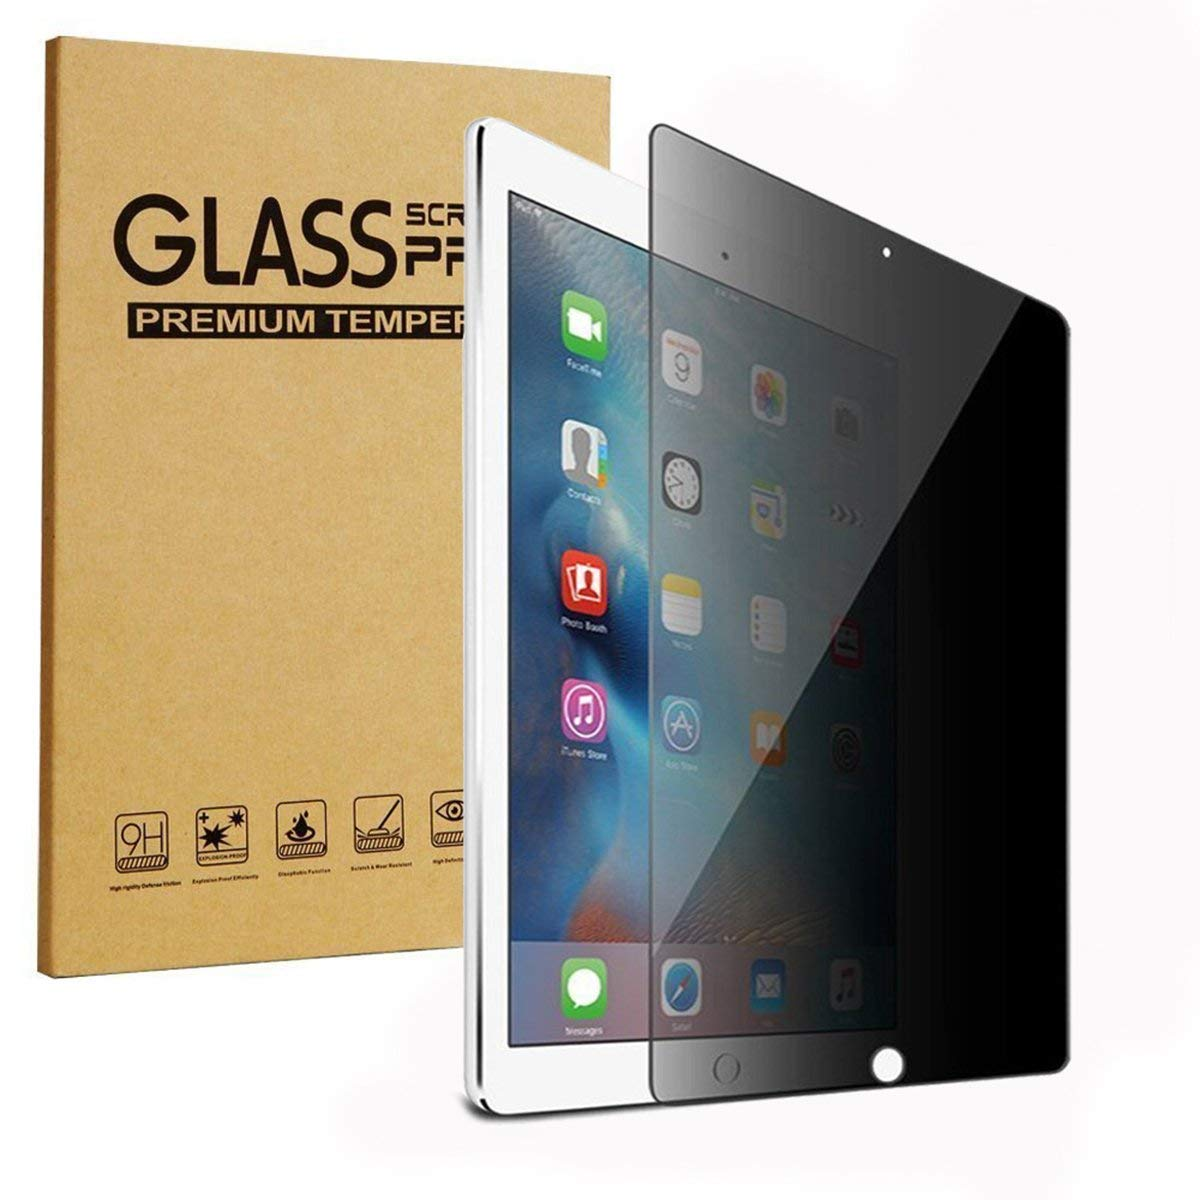 HYAIZLZ Tempered Glass Privacy Screen Protector for iPad Air 10.5 (2019) Anti-Spy Protective Film 10.5 inch 9H Hardness 2.5D Round Edge,360 Degree(4 Way)